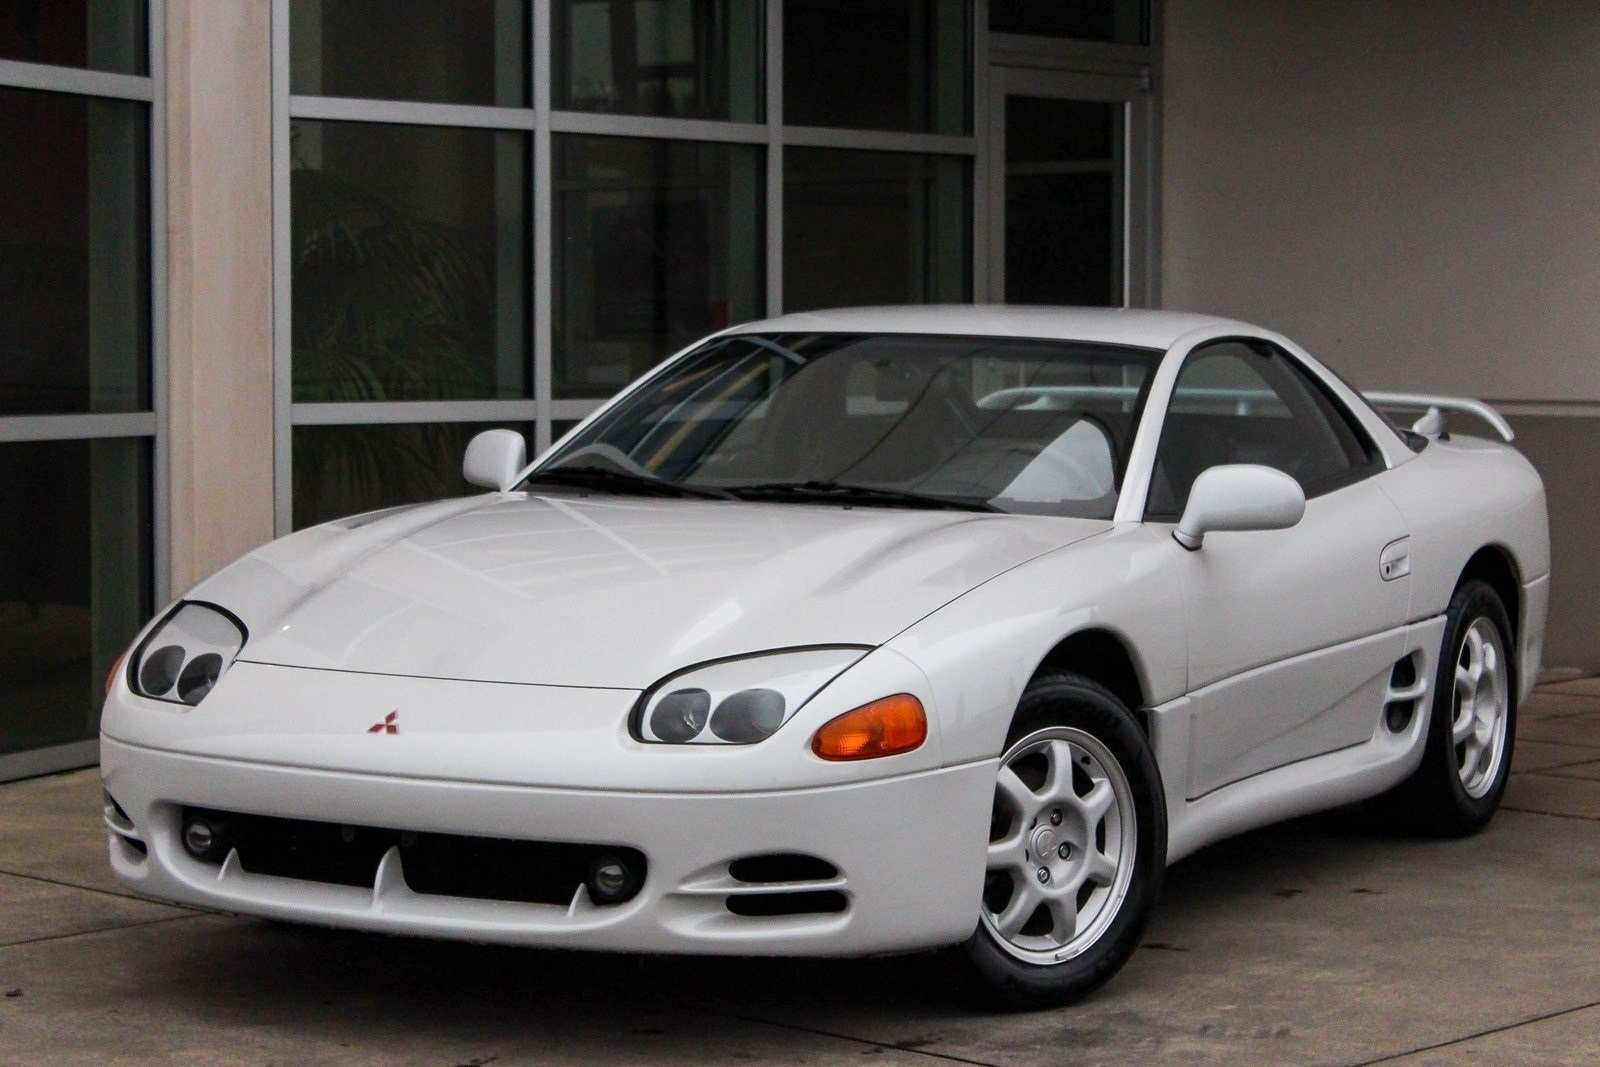 78 Best 2020 Mitsubishi 3000Gt Images